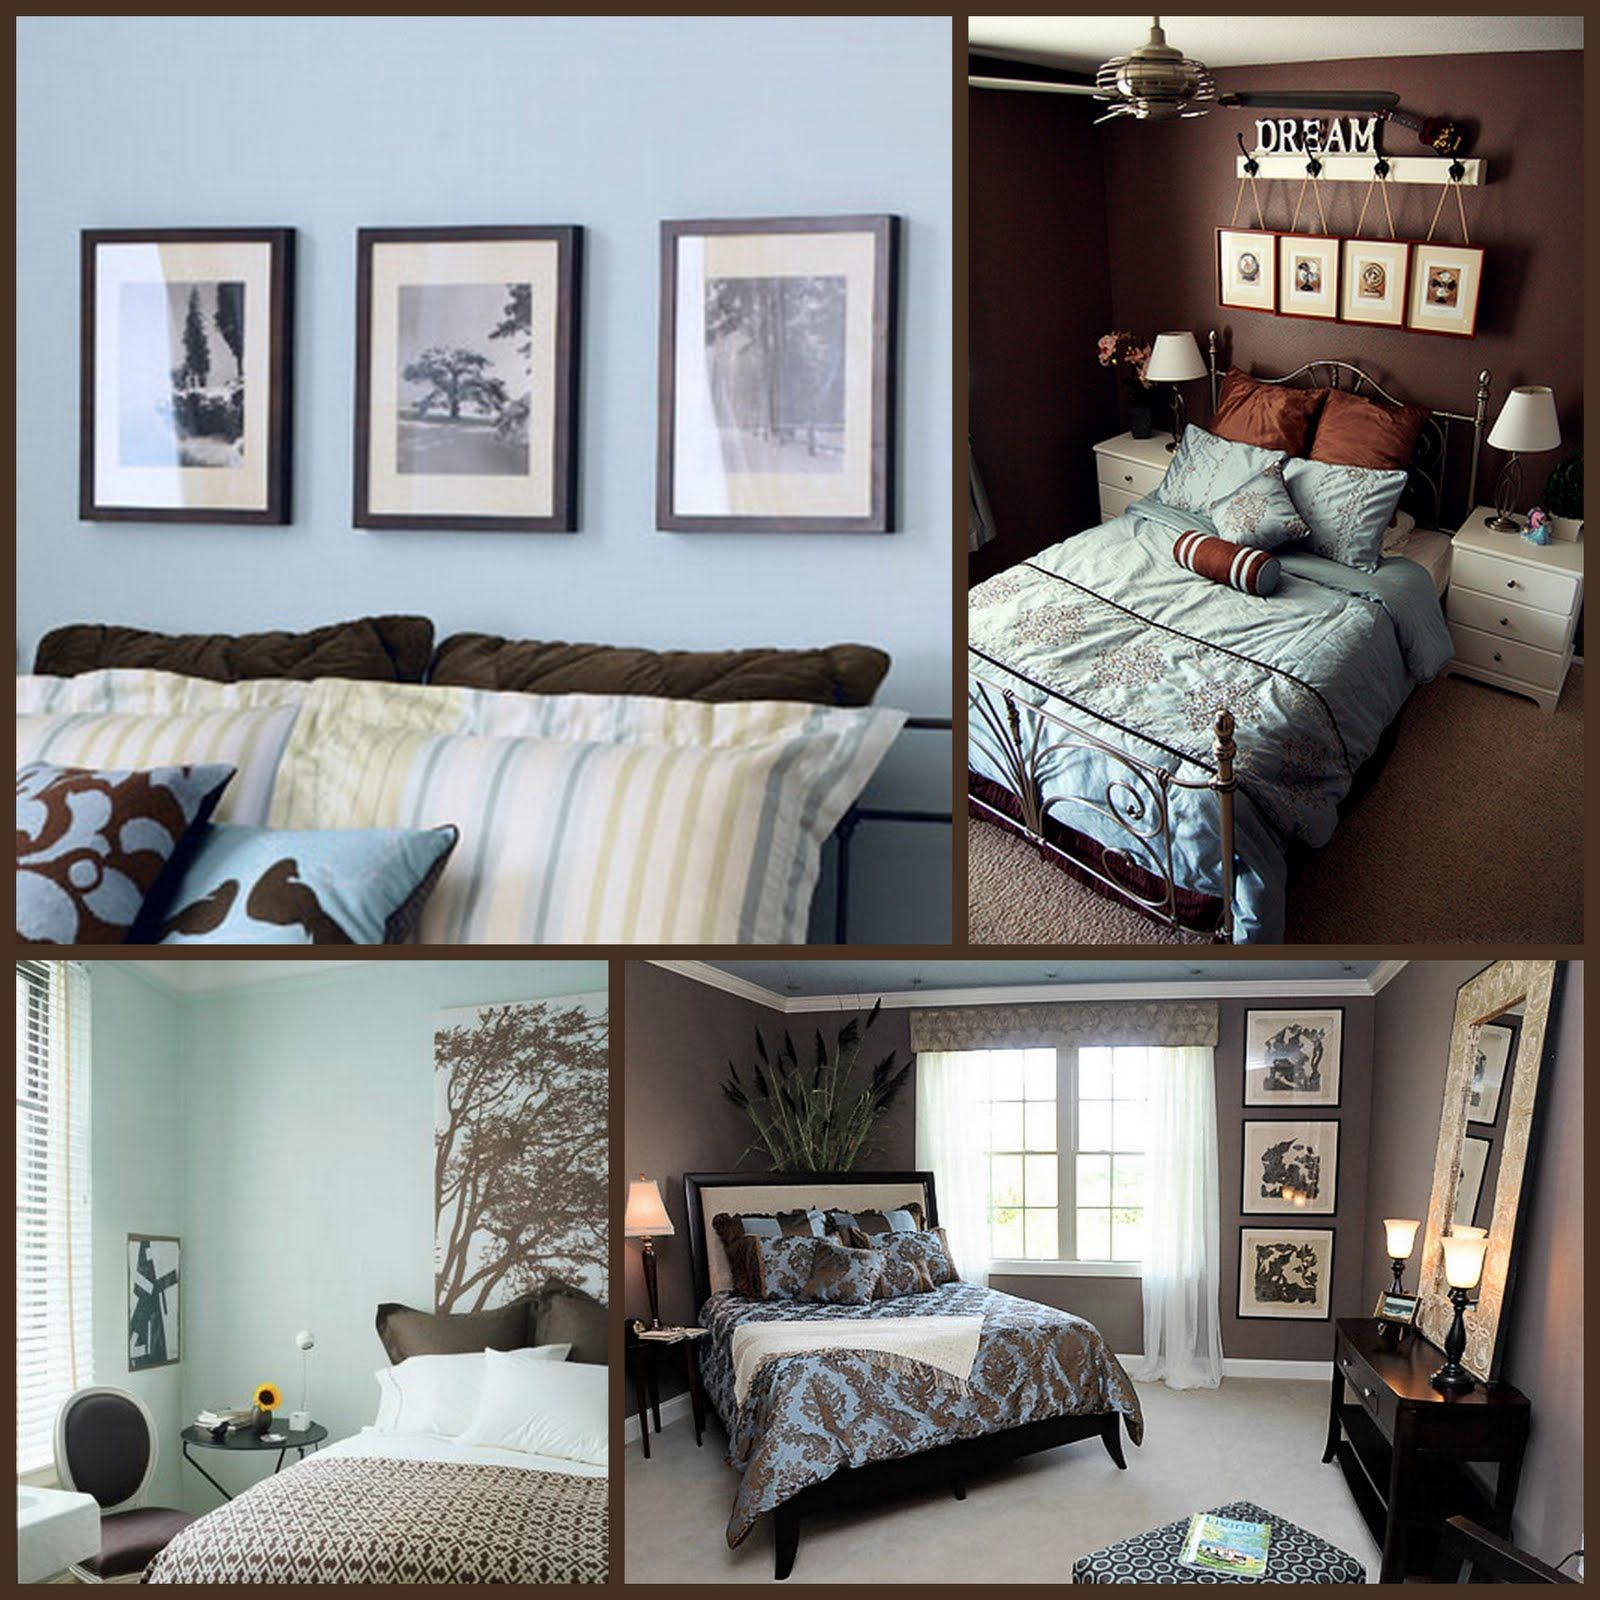 Blue and brown bedroom decor - Bedroom Decor Inspiration Brown And Duckegg Bedroom